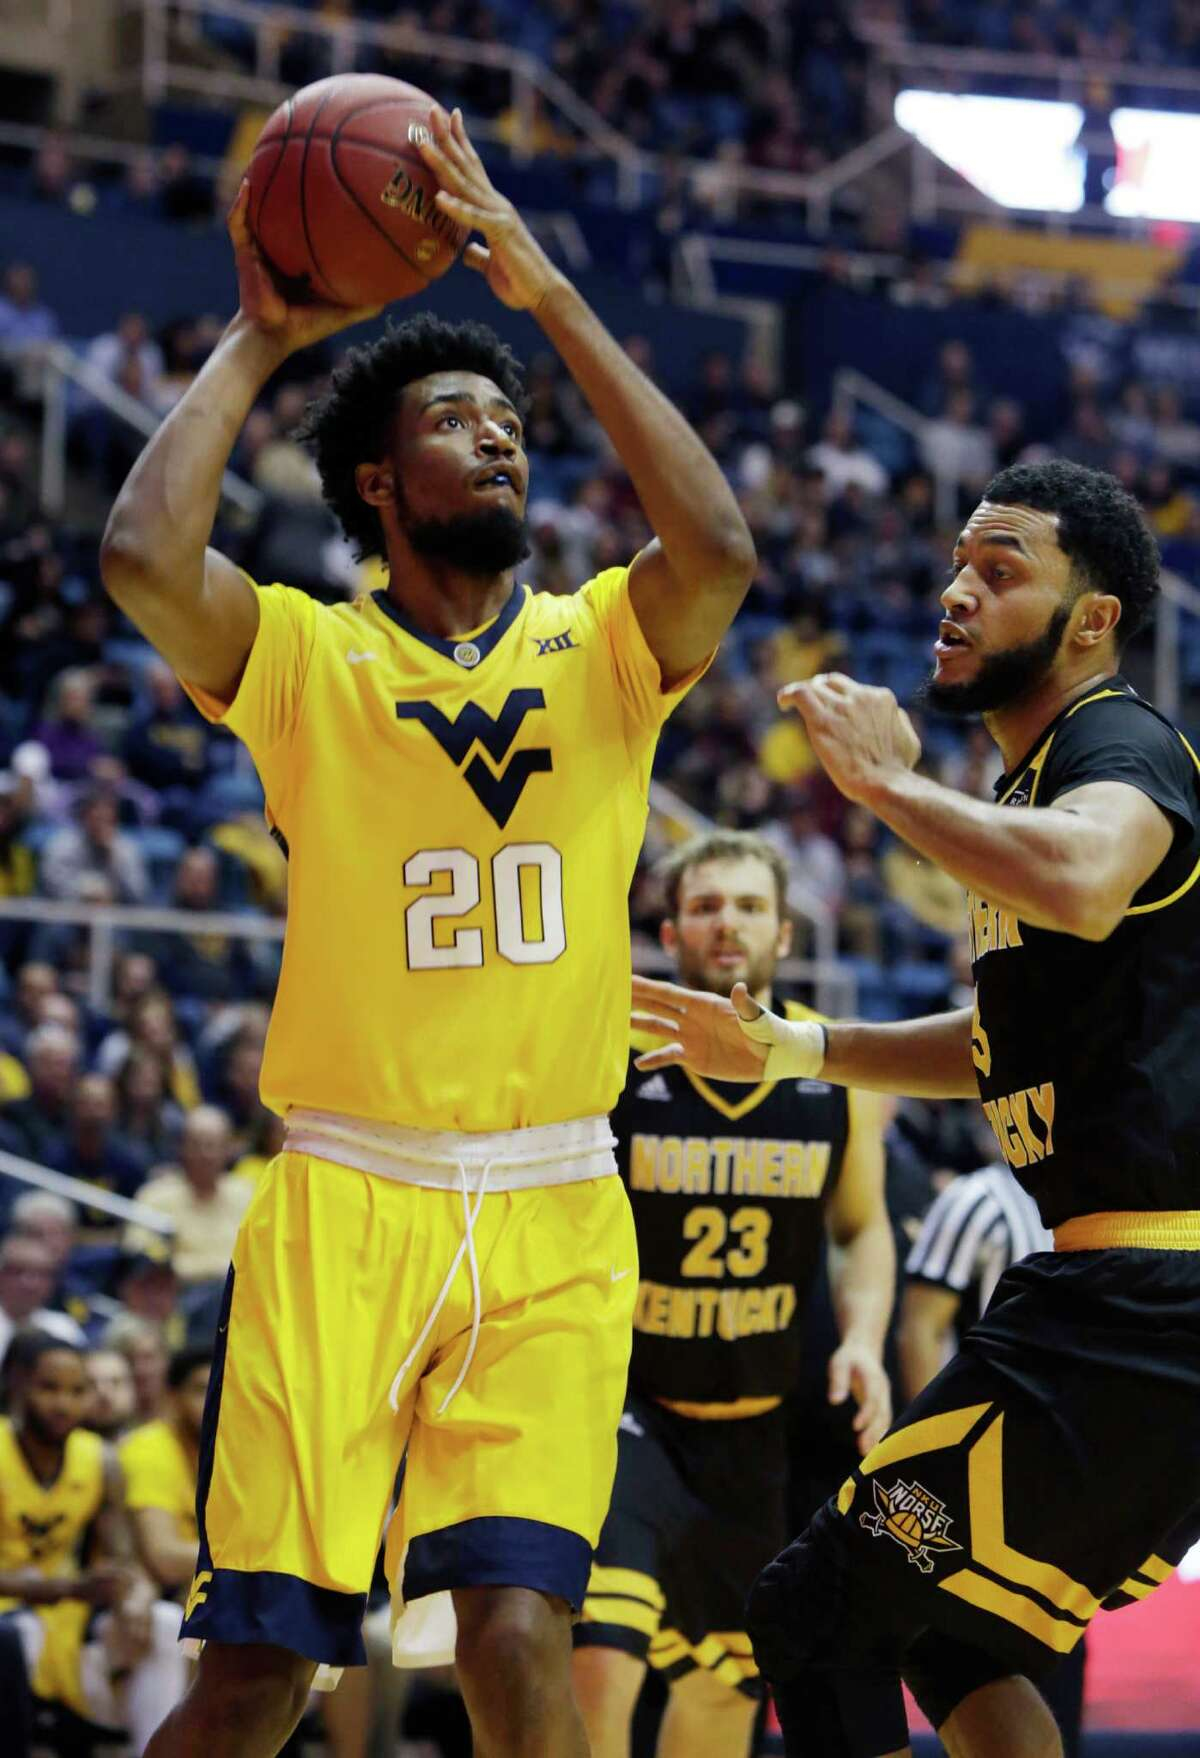 West Virginia forward Brandon Watkins (20) takes a shot while being defended by Northern Kentucky forward Brennan Gillis (13) during the second half of an NCAA college basketball game, Friday, Dec. 23, 2016, in Morgantown, W.Va. West Virginia defeated Northern Kentucky 92-61. (AP Photo/Raymond Thompson)